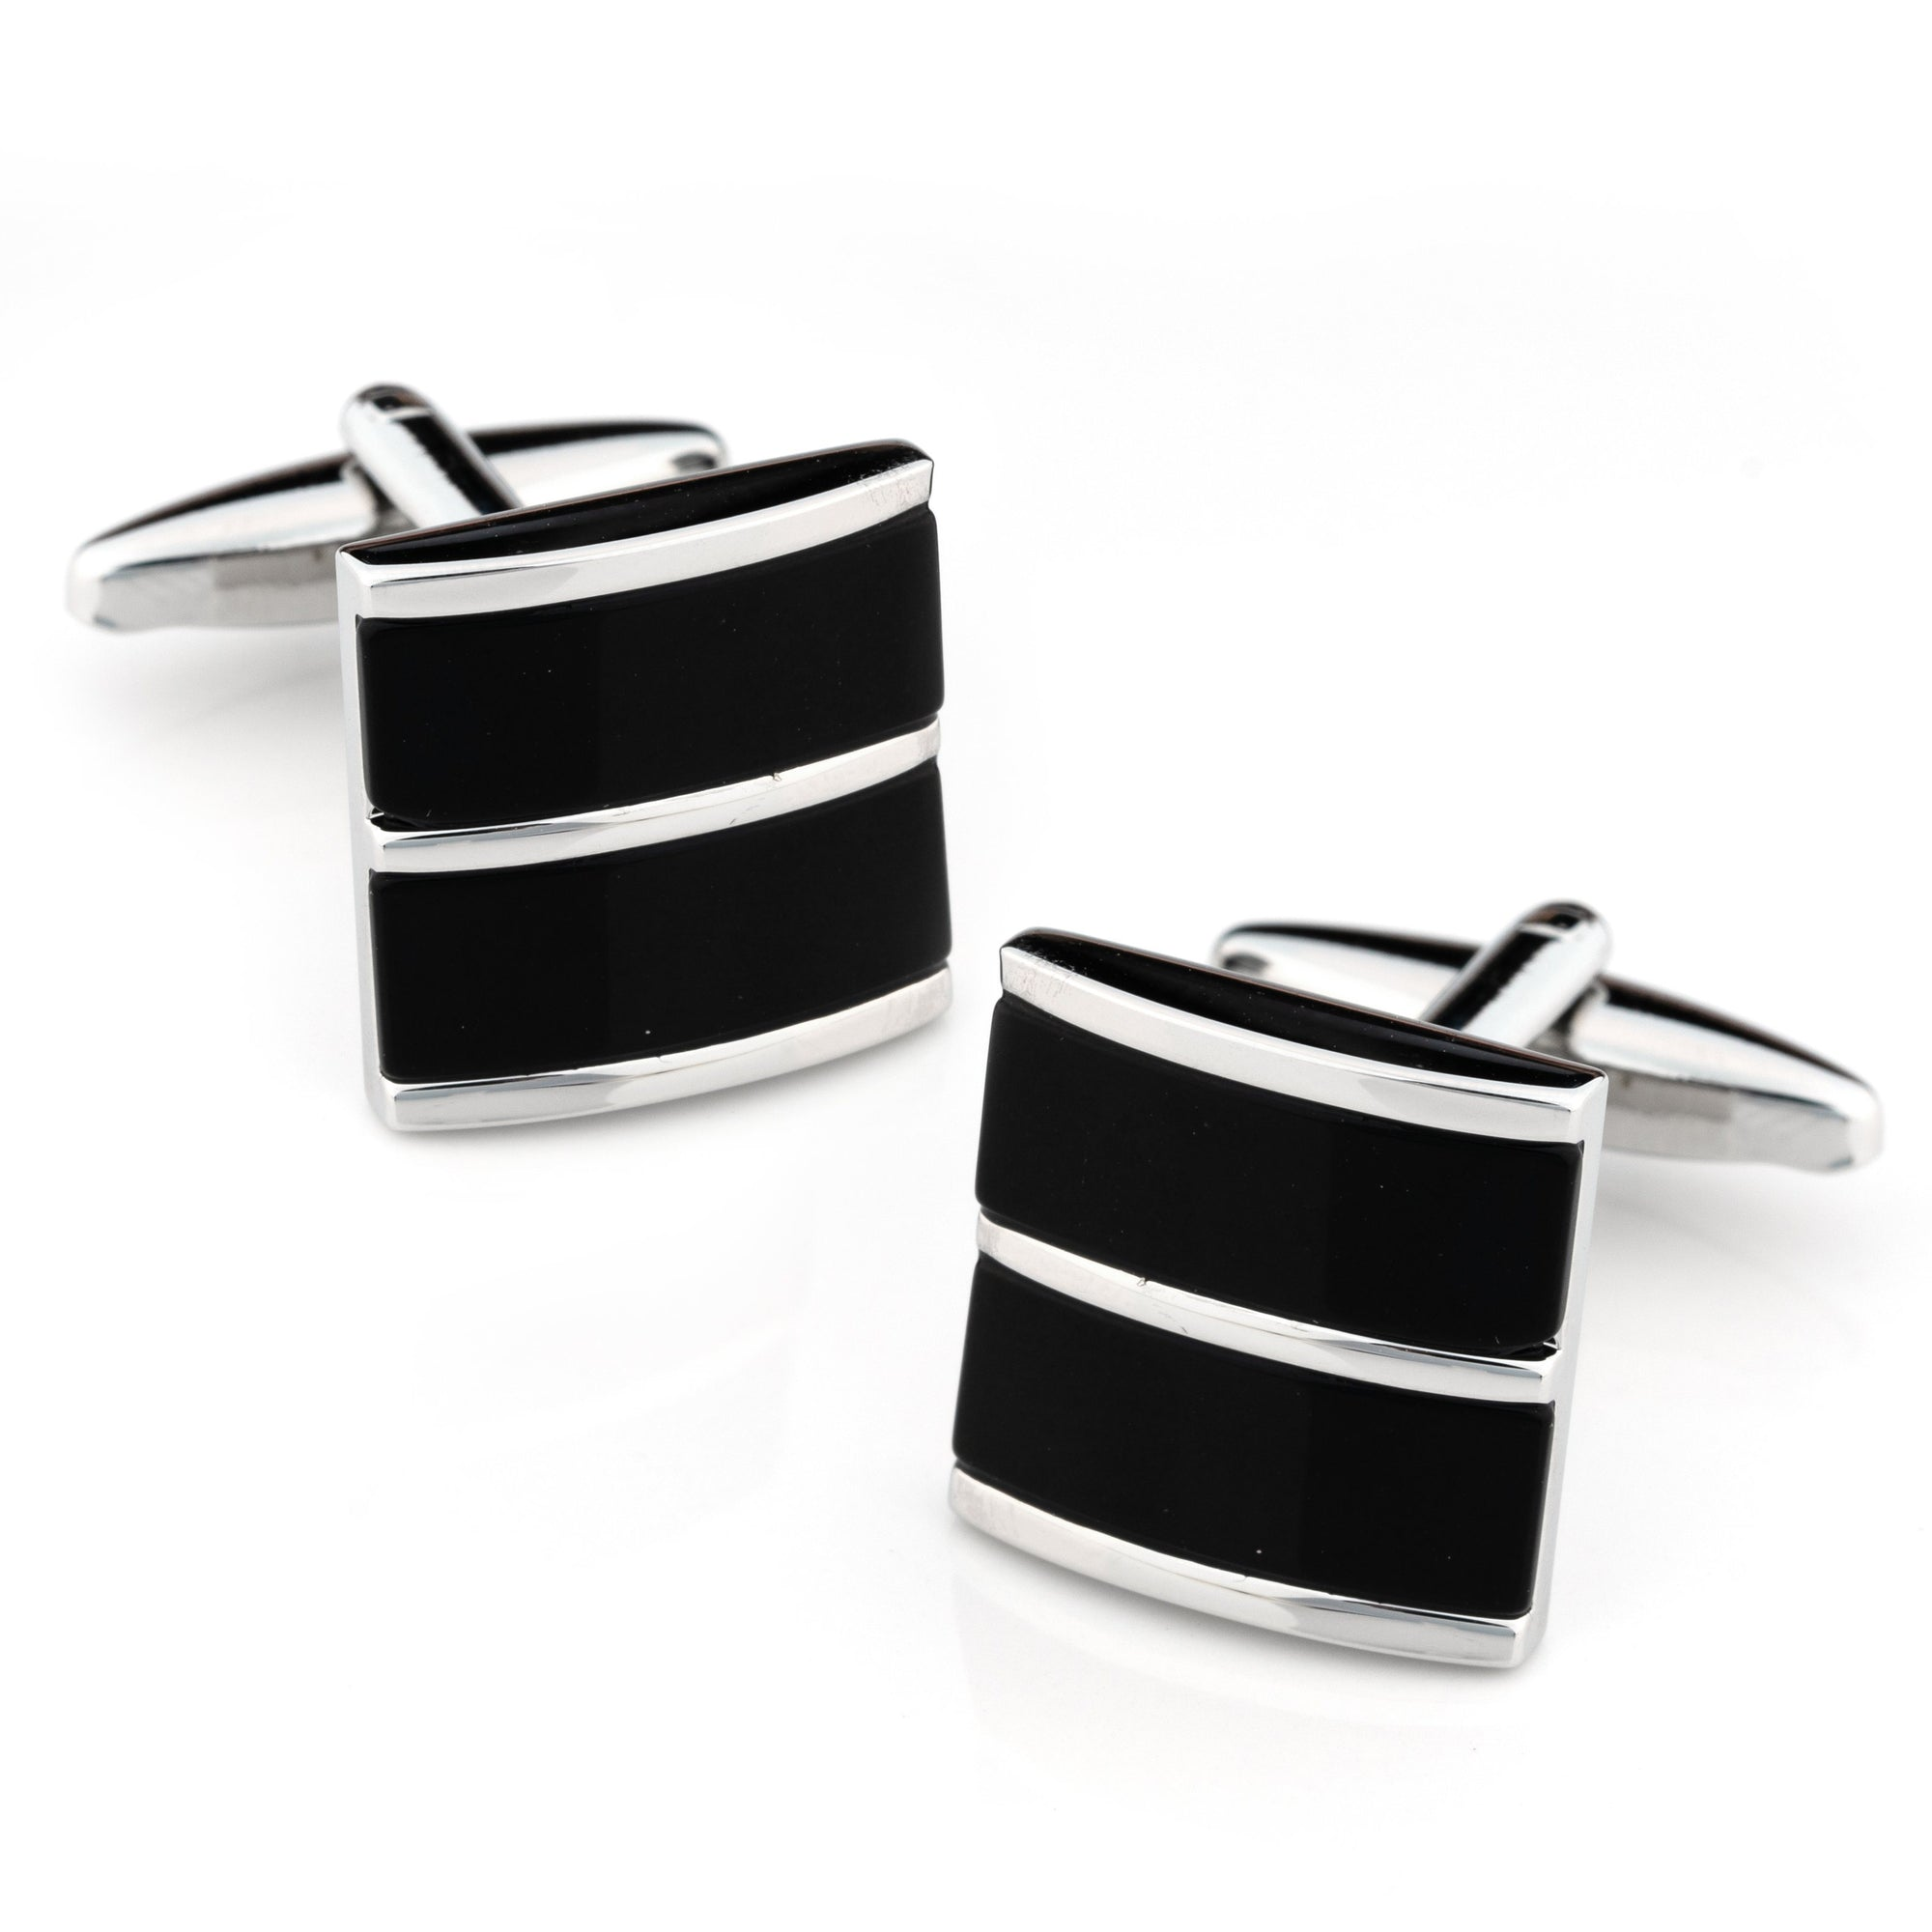 Dual Black Ice Cateye Silver Cufflinks Classic & Modern Cufflinks Clinks Australia Dual Black Ice Cateye Silver Cufflinks